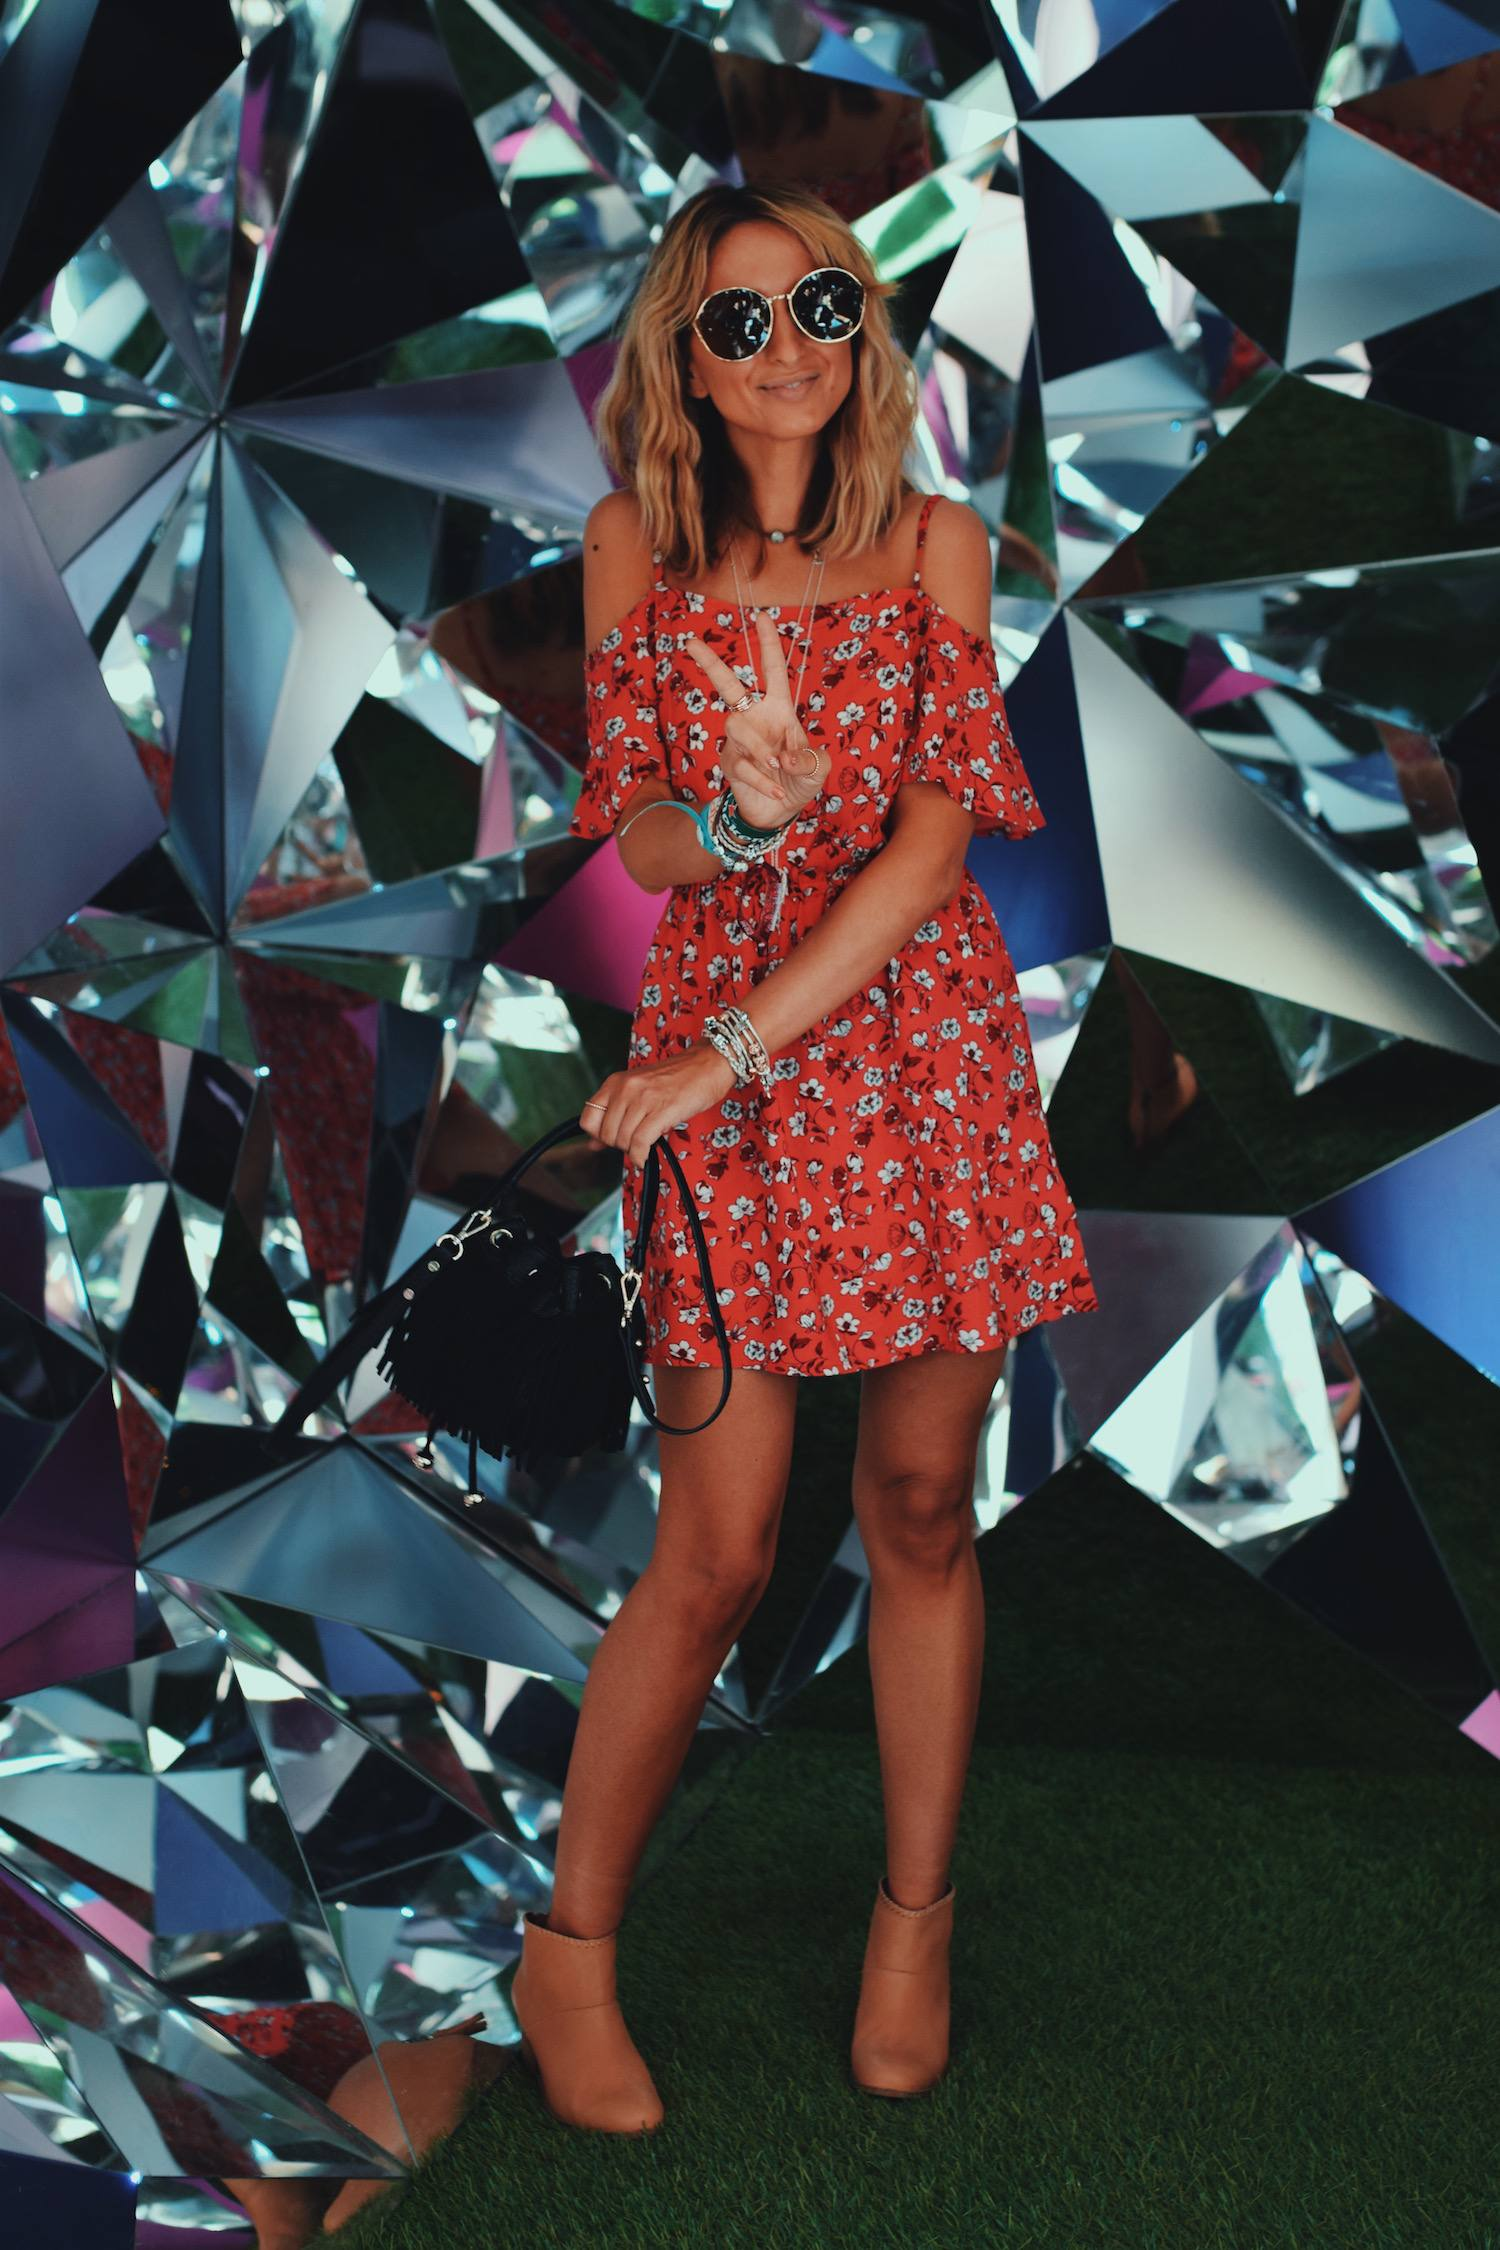 The PANDORA Jewelry Experience at Coachella – JUSTINE